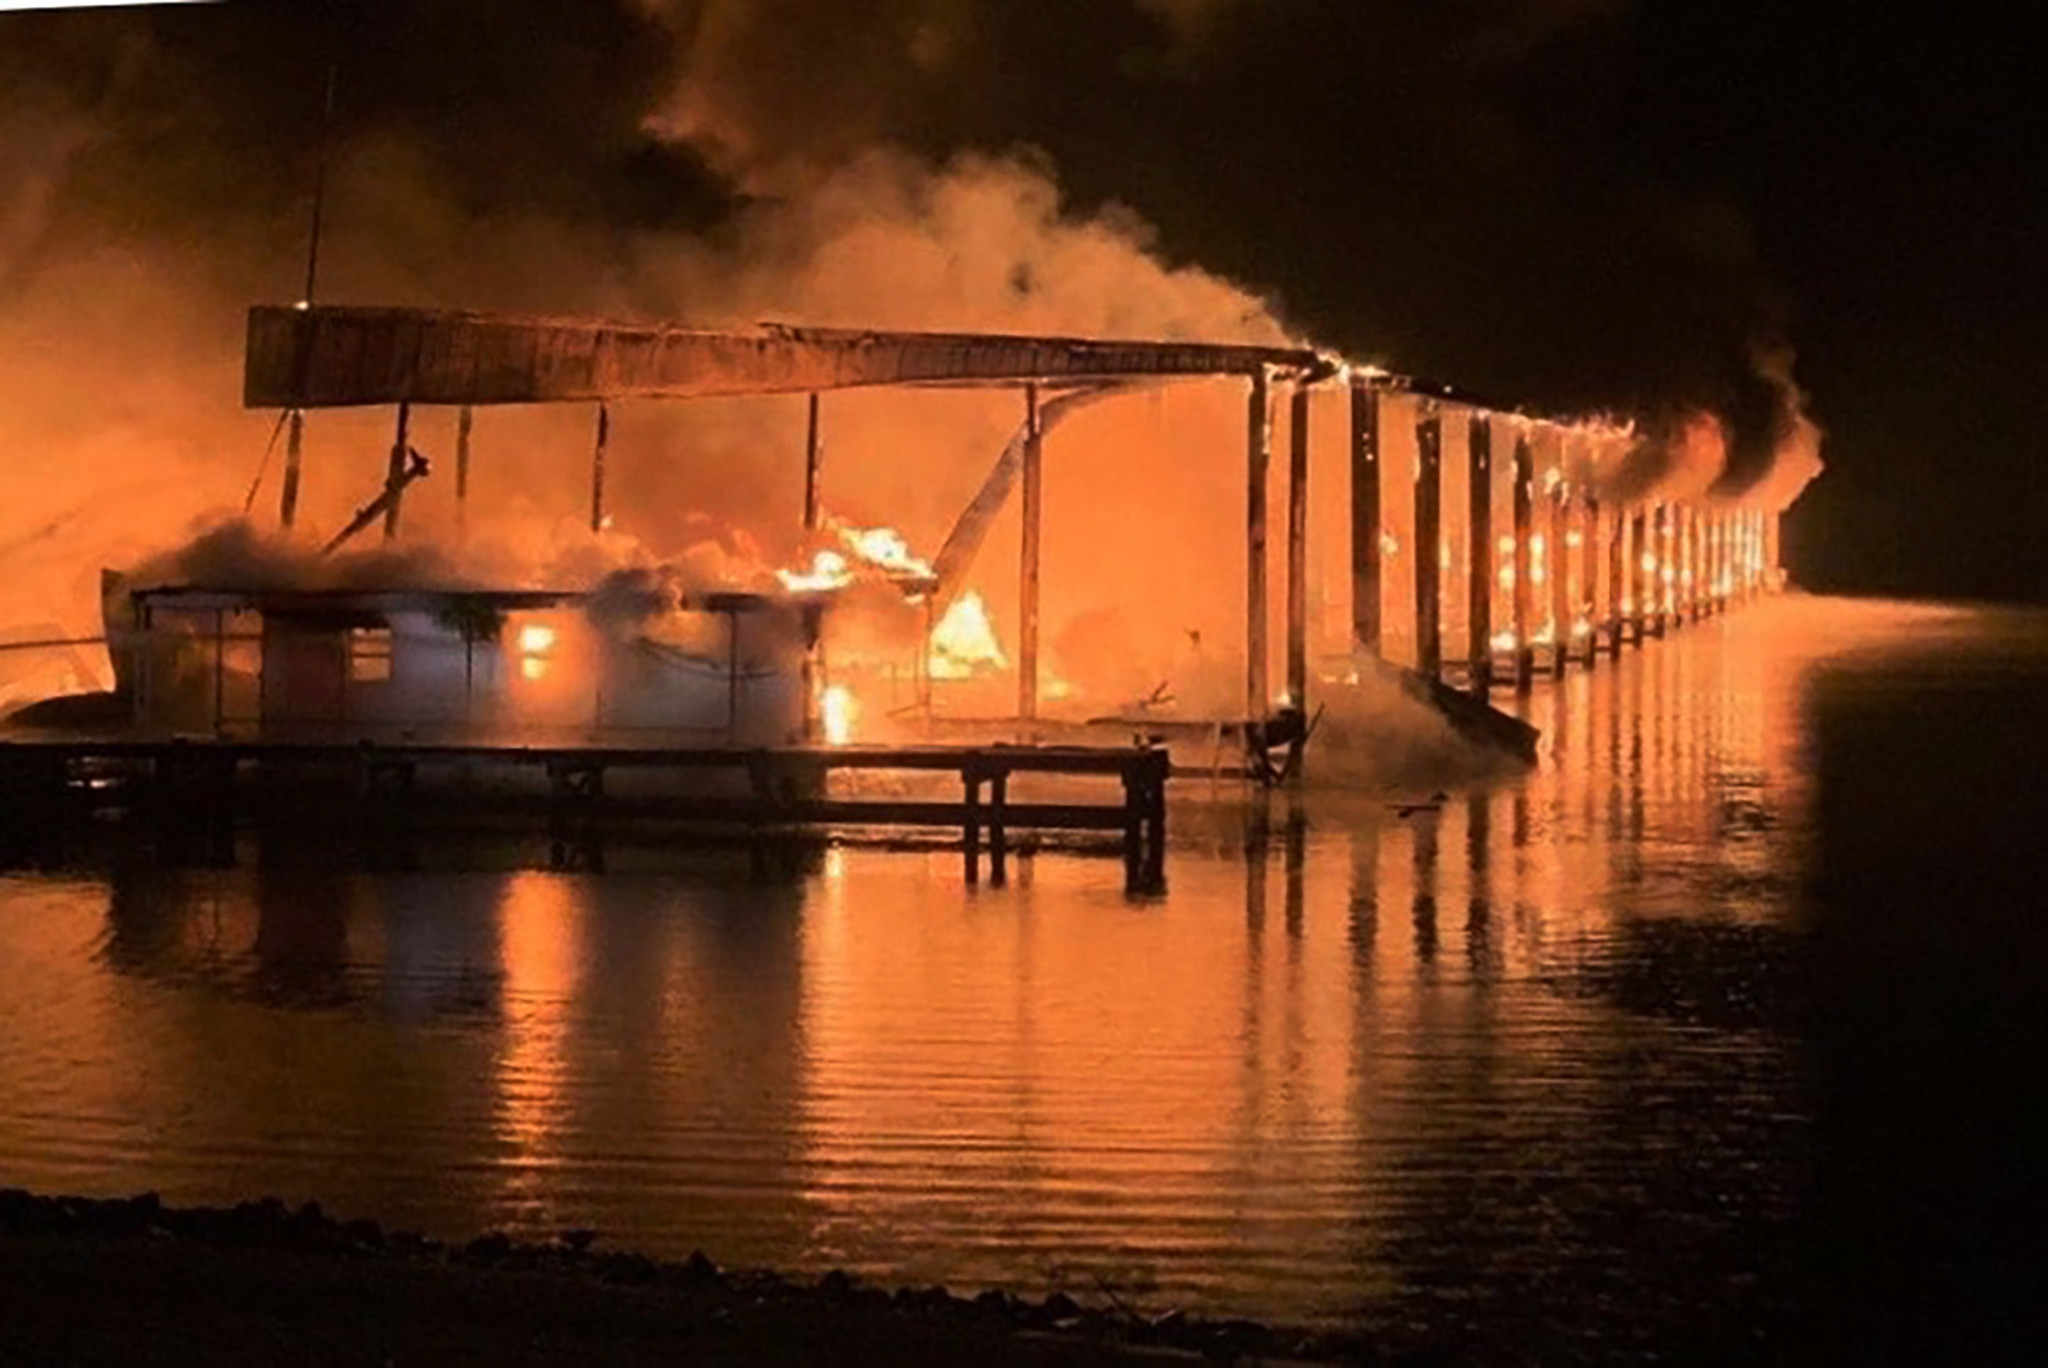 At least two dead, multiple missing in Alabama boat dock fire